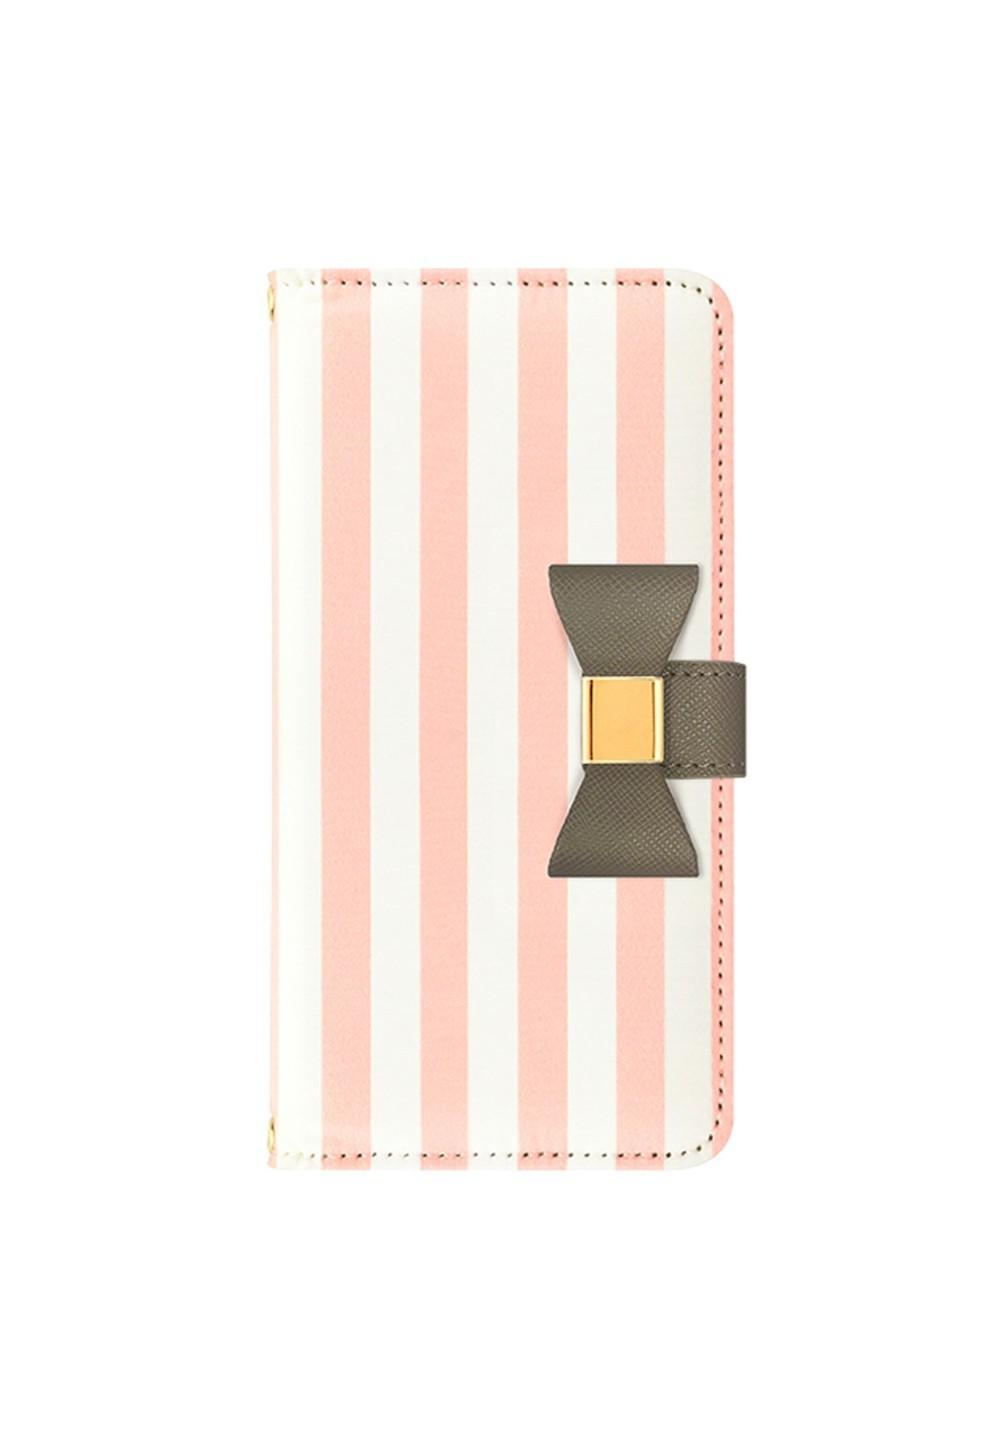 UNiCASE BLUE LABEL / Ribbon Diary Stripe for iPhone7/6s/6 Pink - #1